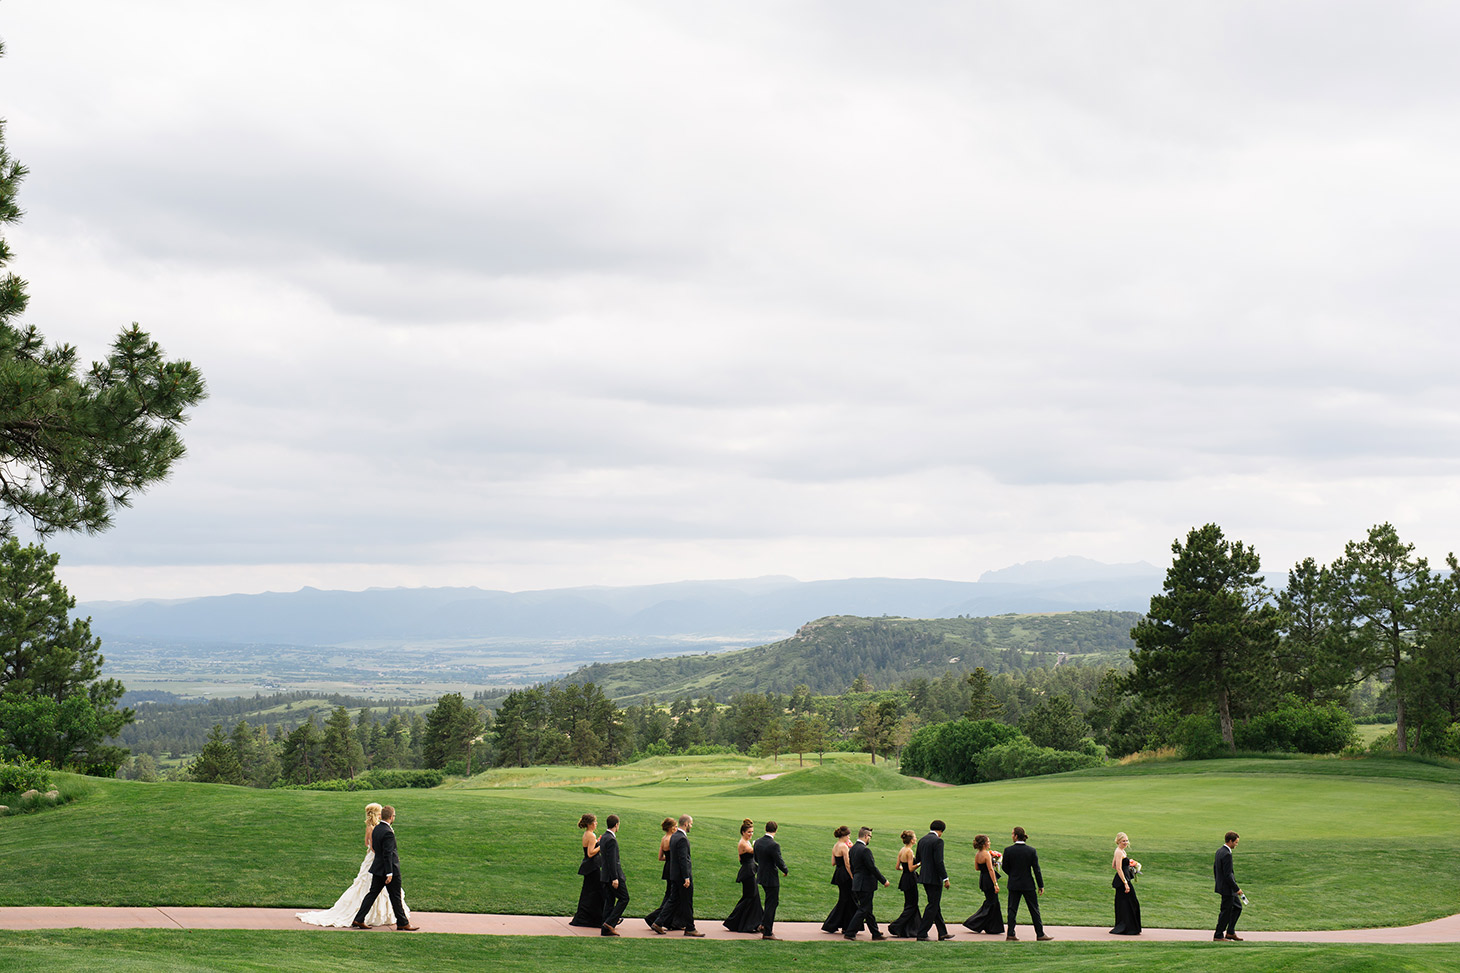 Megan-Newton-Photography-Best-Wedding-Photos-2015-209